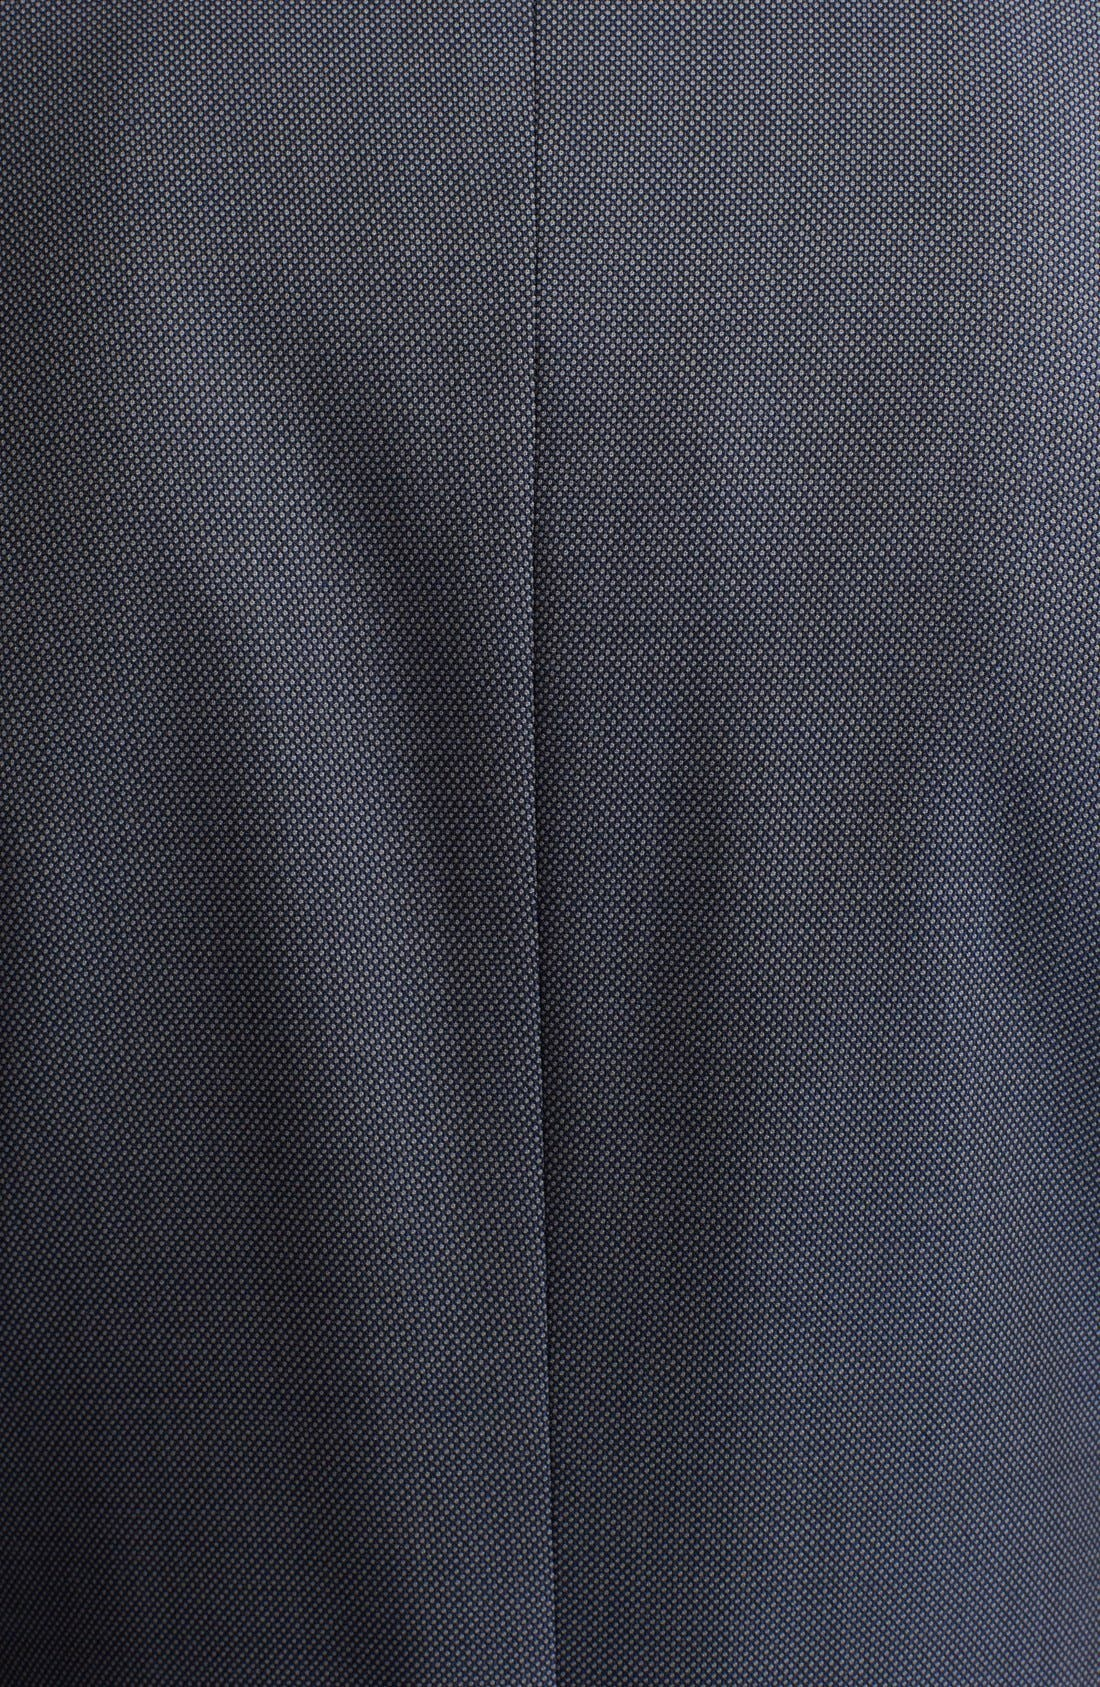 Alternate Image 5  - Paul Smith London 'Byard' Bird's Eye Wool Suit